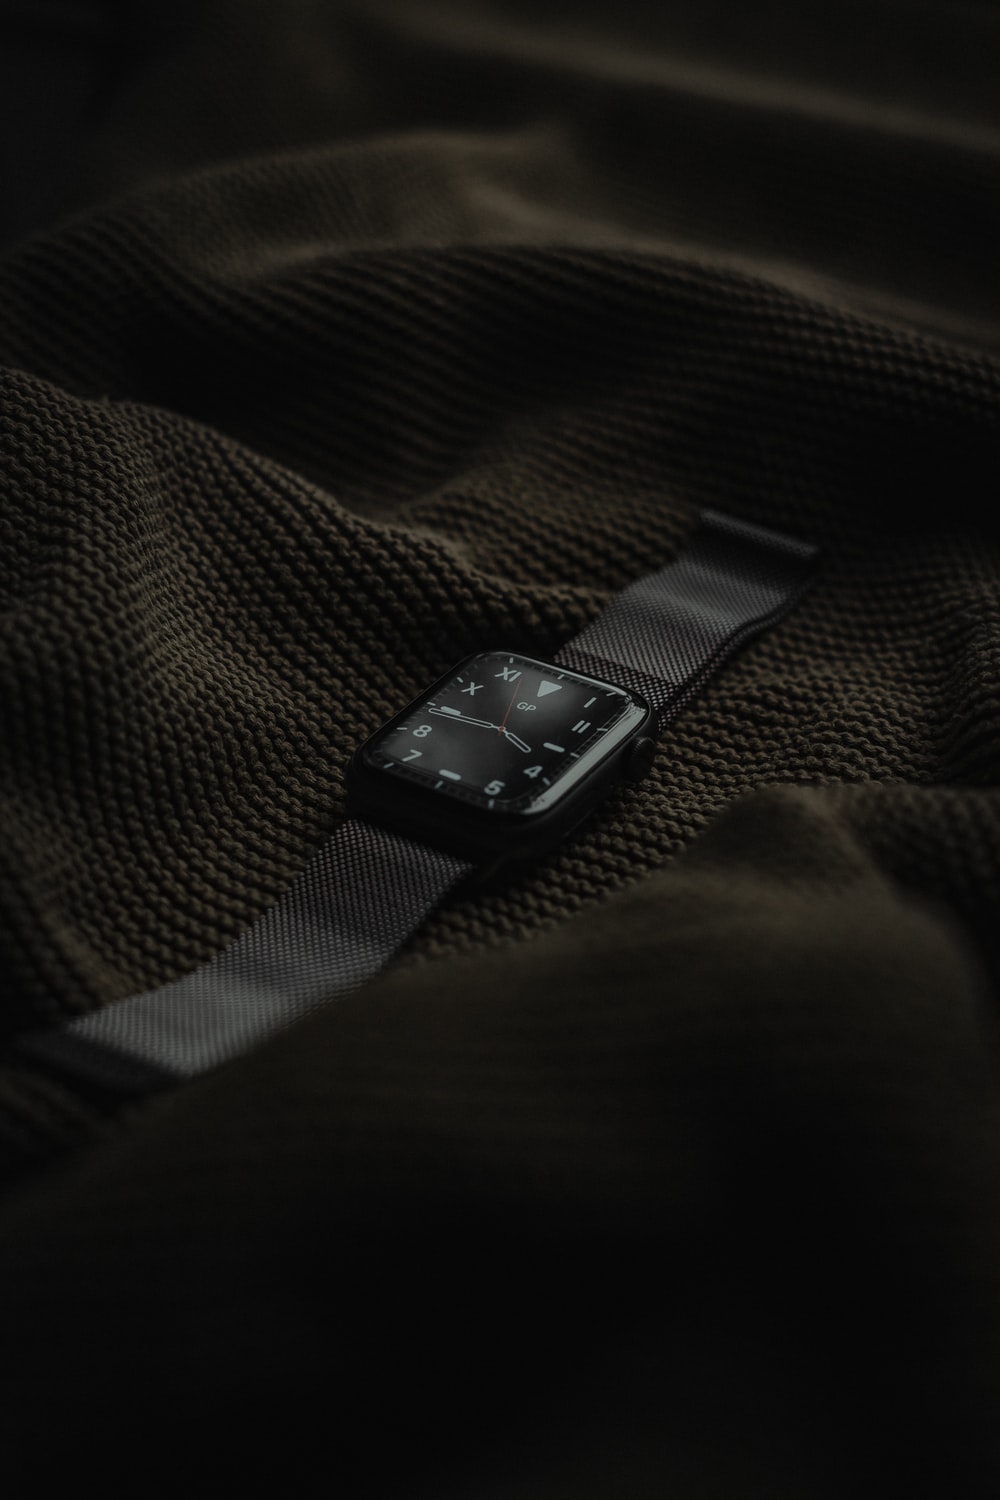 black apple watch on black and gray textile